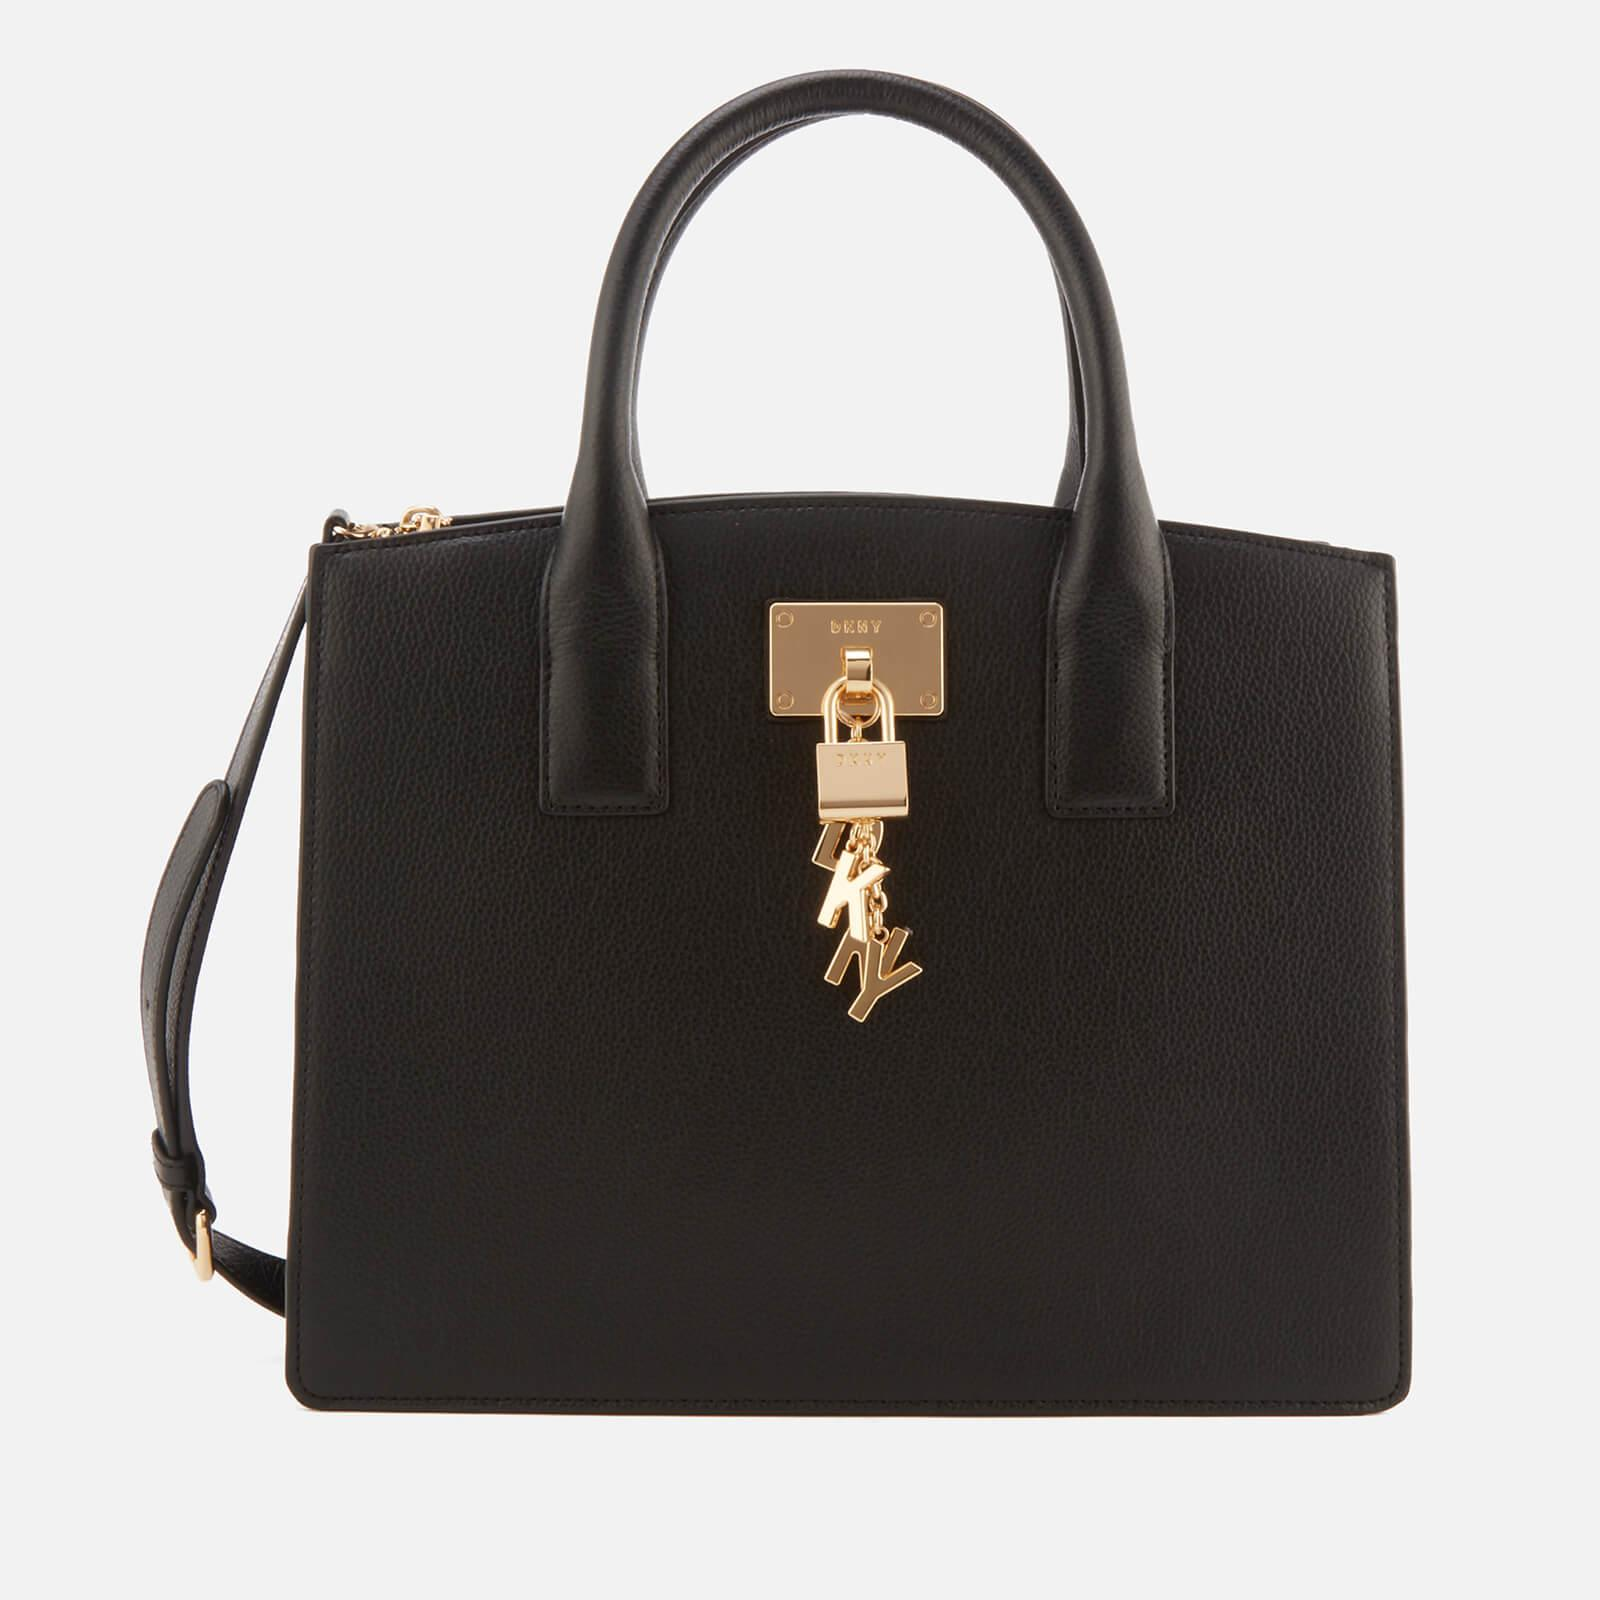 a14f9f2c1 DKNY Black And Gold Grained Elissa Leather Tote Bag in Black - Lyst